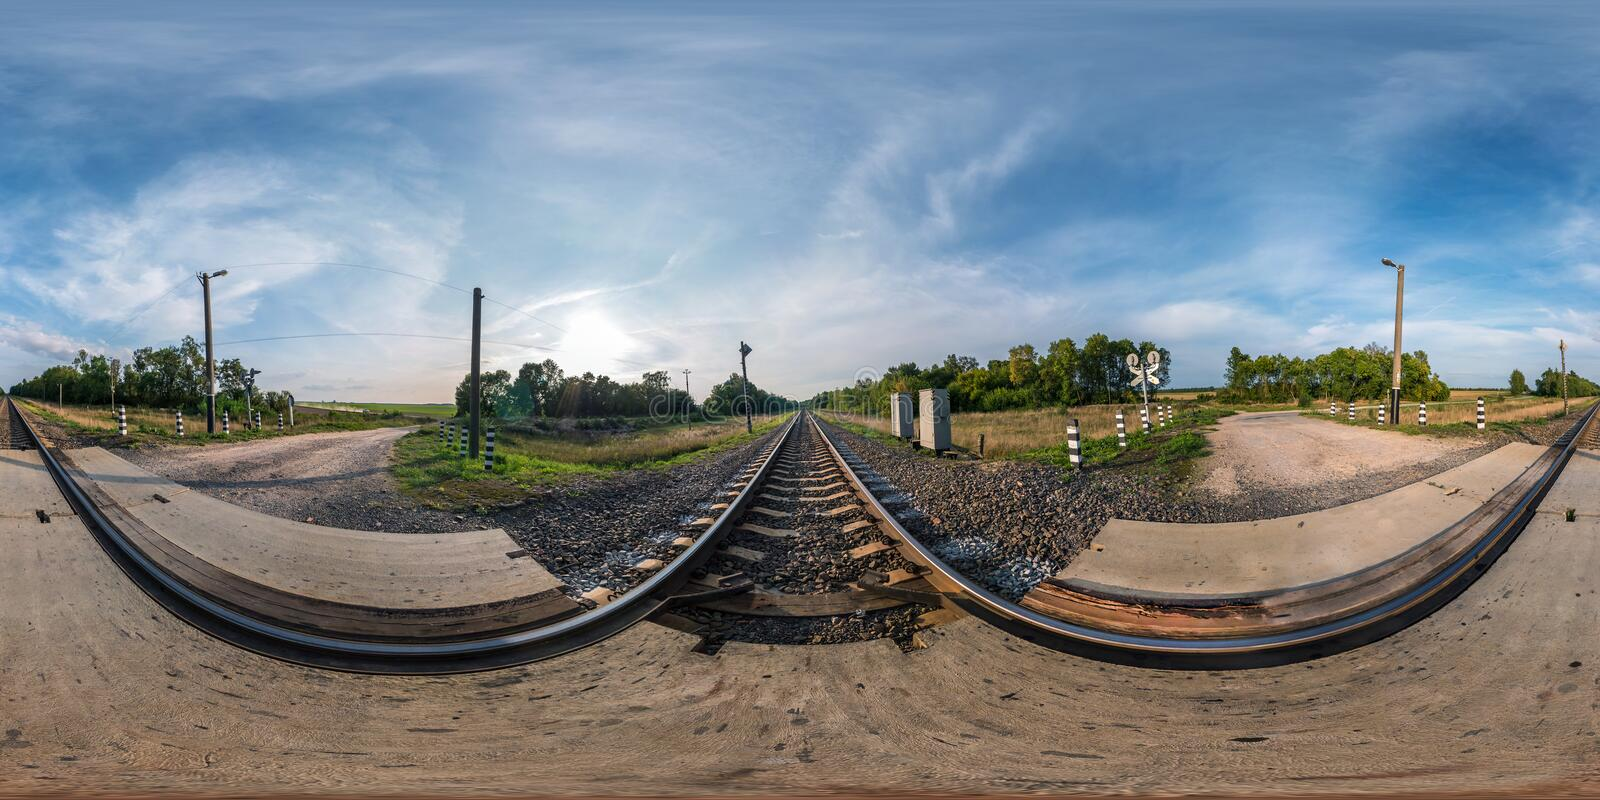 Full seamless spherical panorama 360 by 180 angle view near railroad crossing in equirectangular projection, ready VR virtual royalty free stock photos